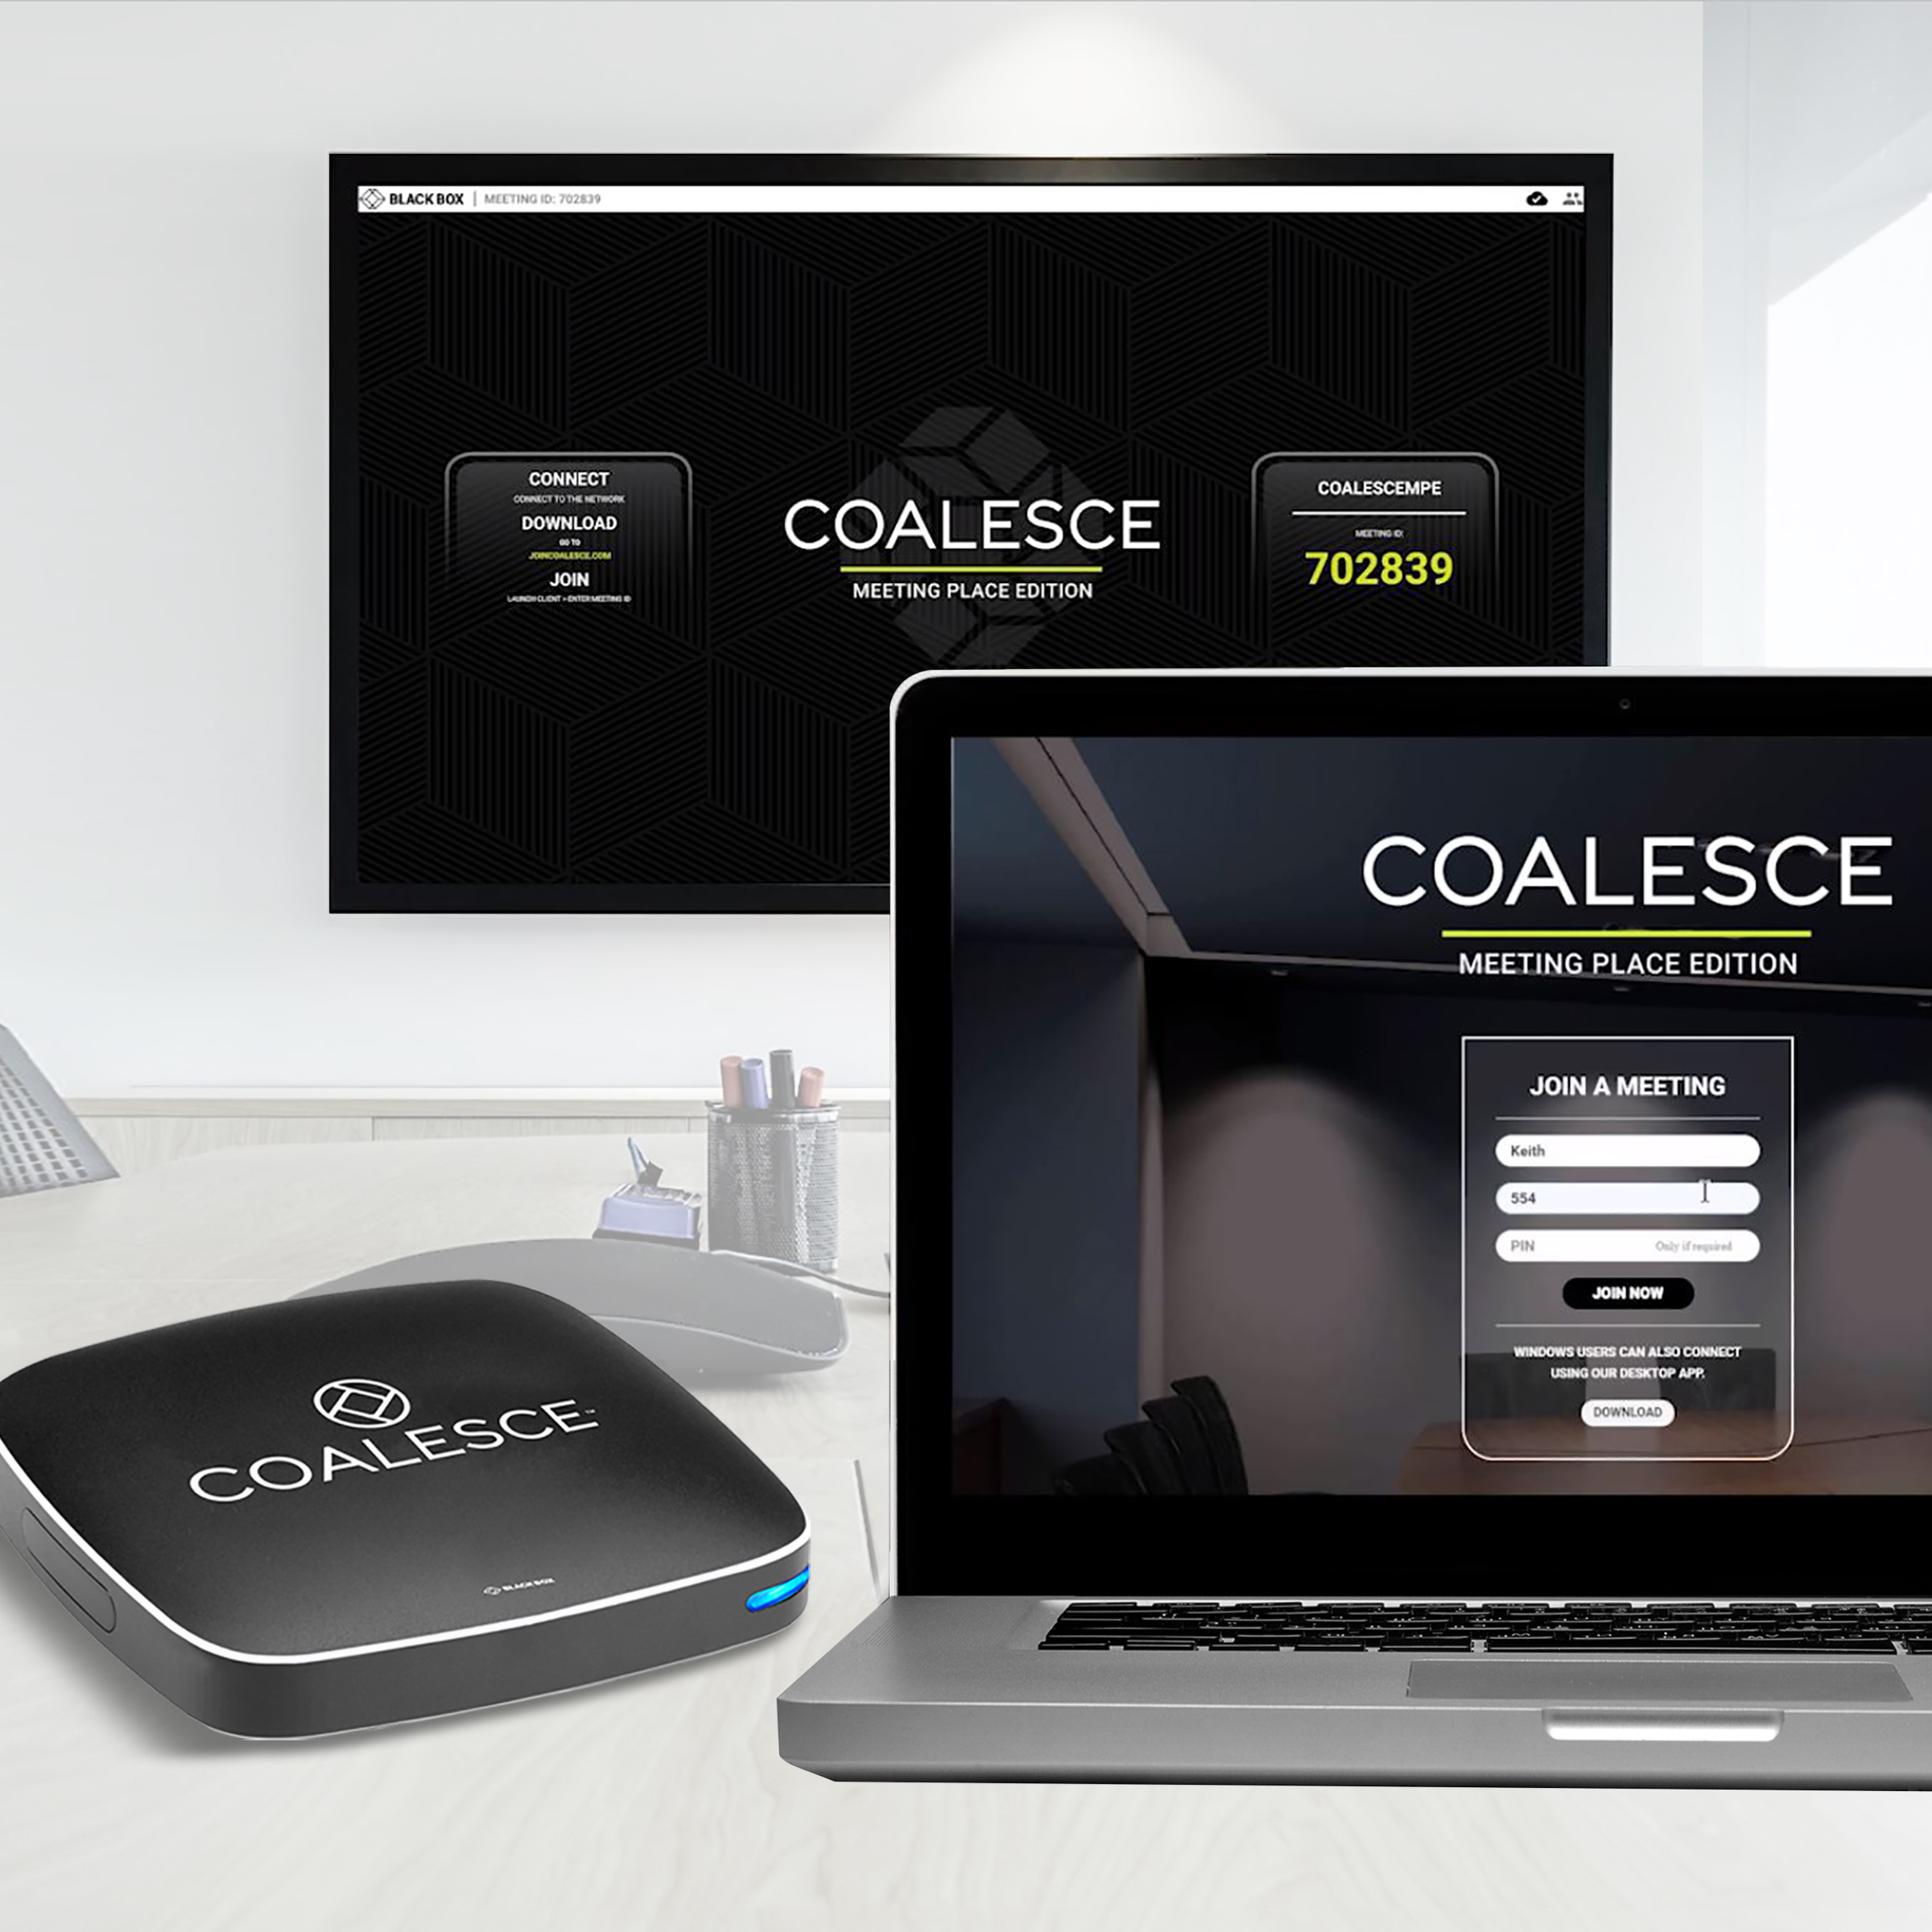 Connect Wc Wireless Presentation System Coalesce Mpe Black Box